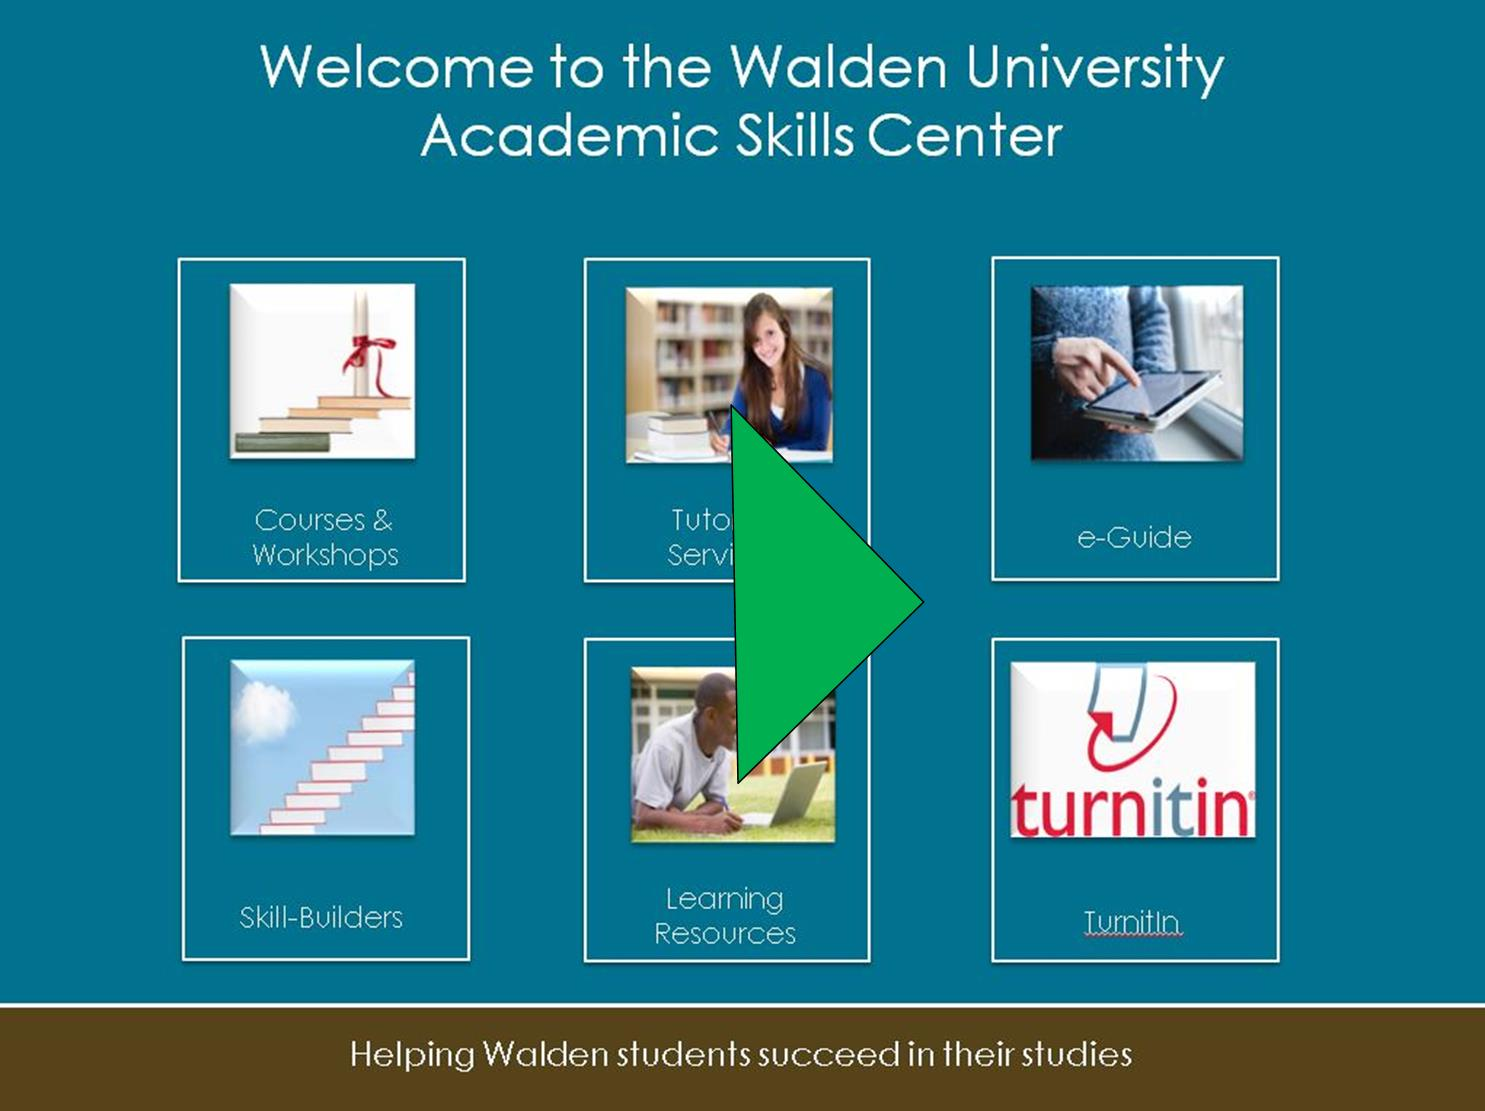 Link to Academic Skills Center's welcome video